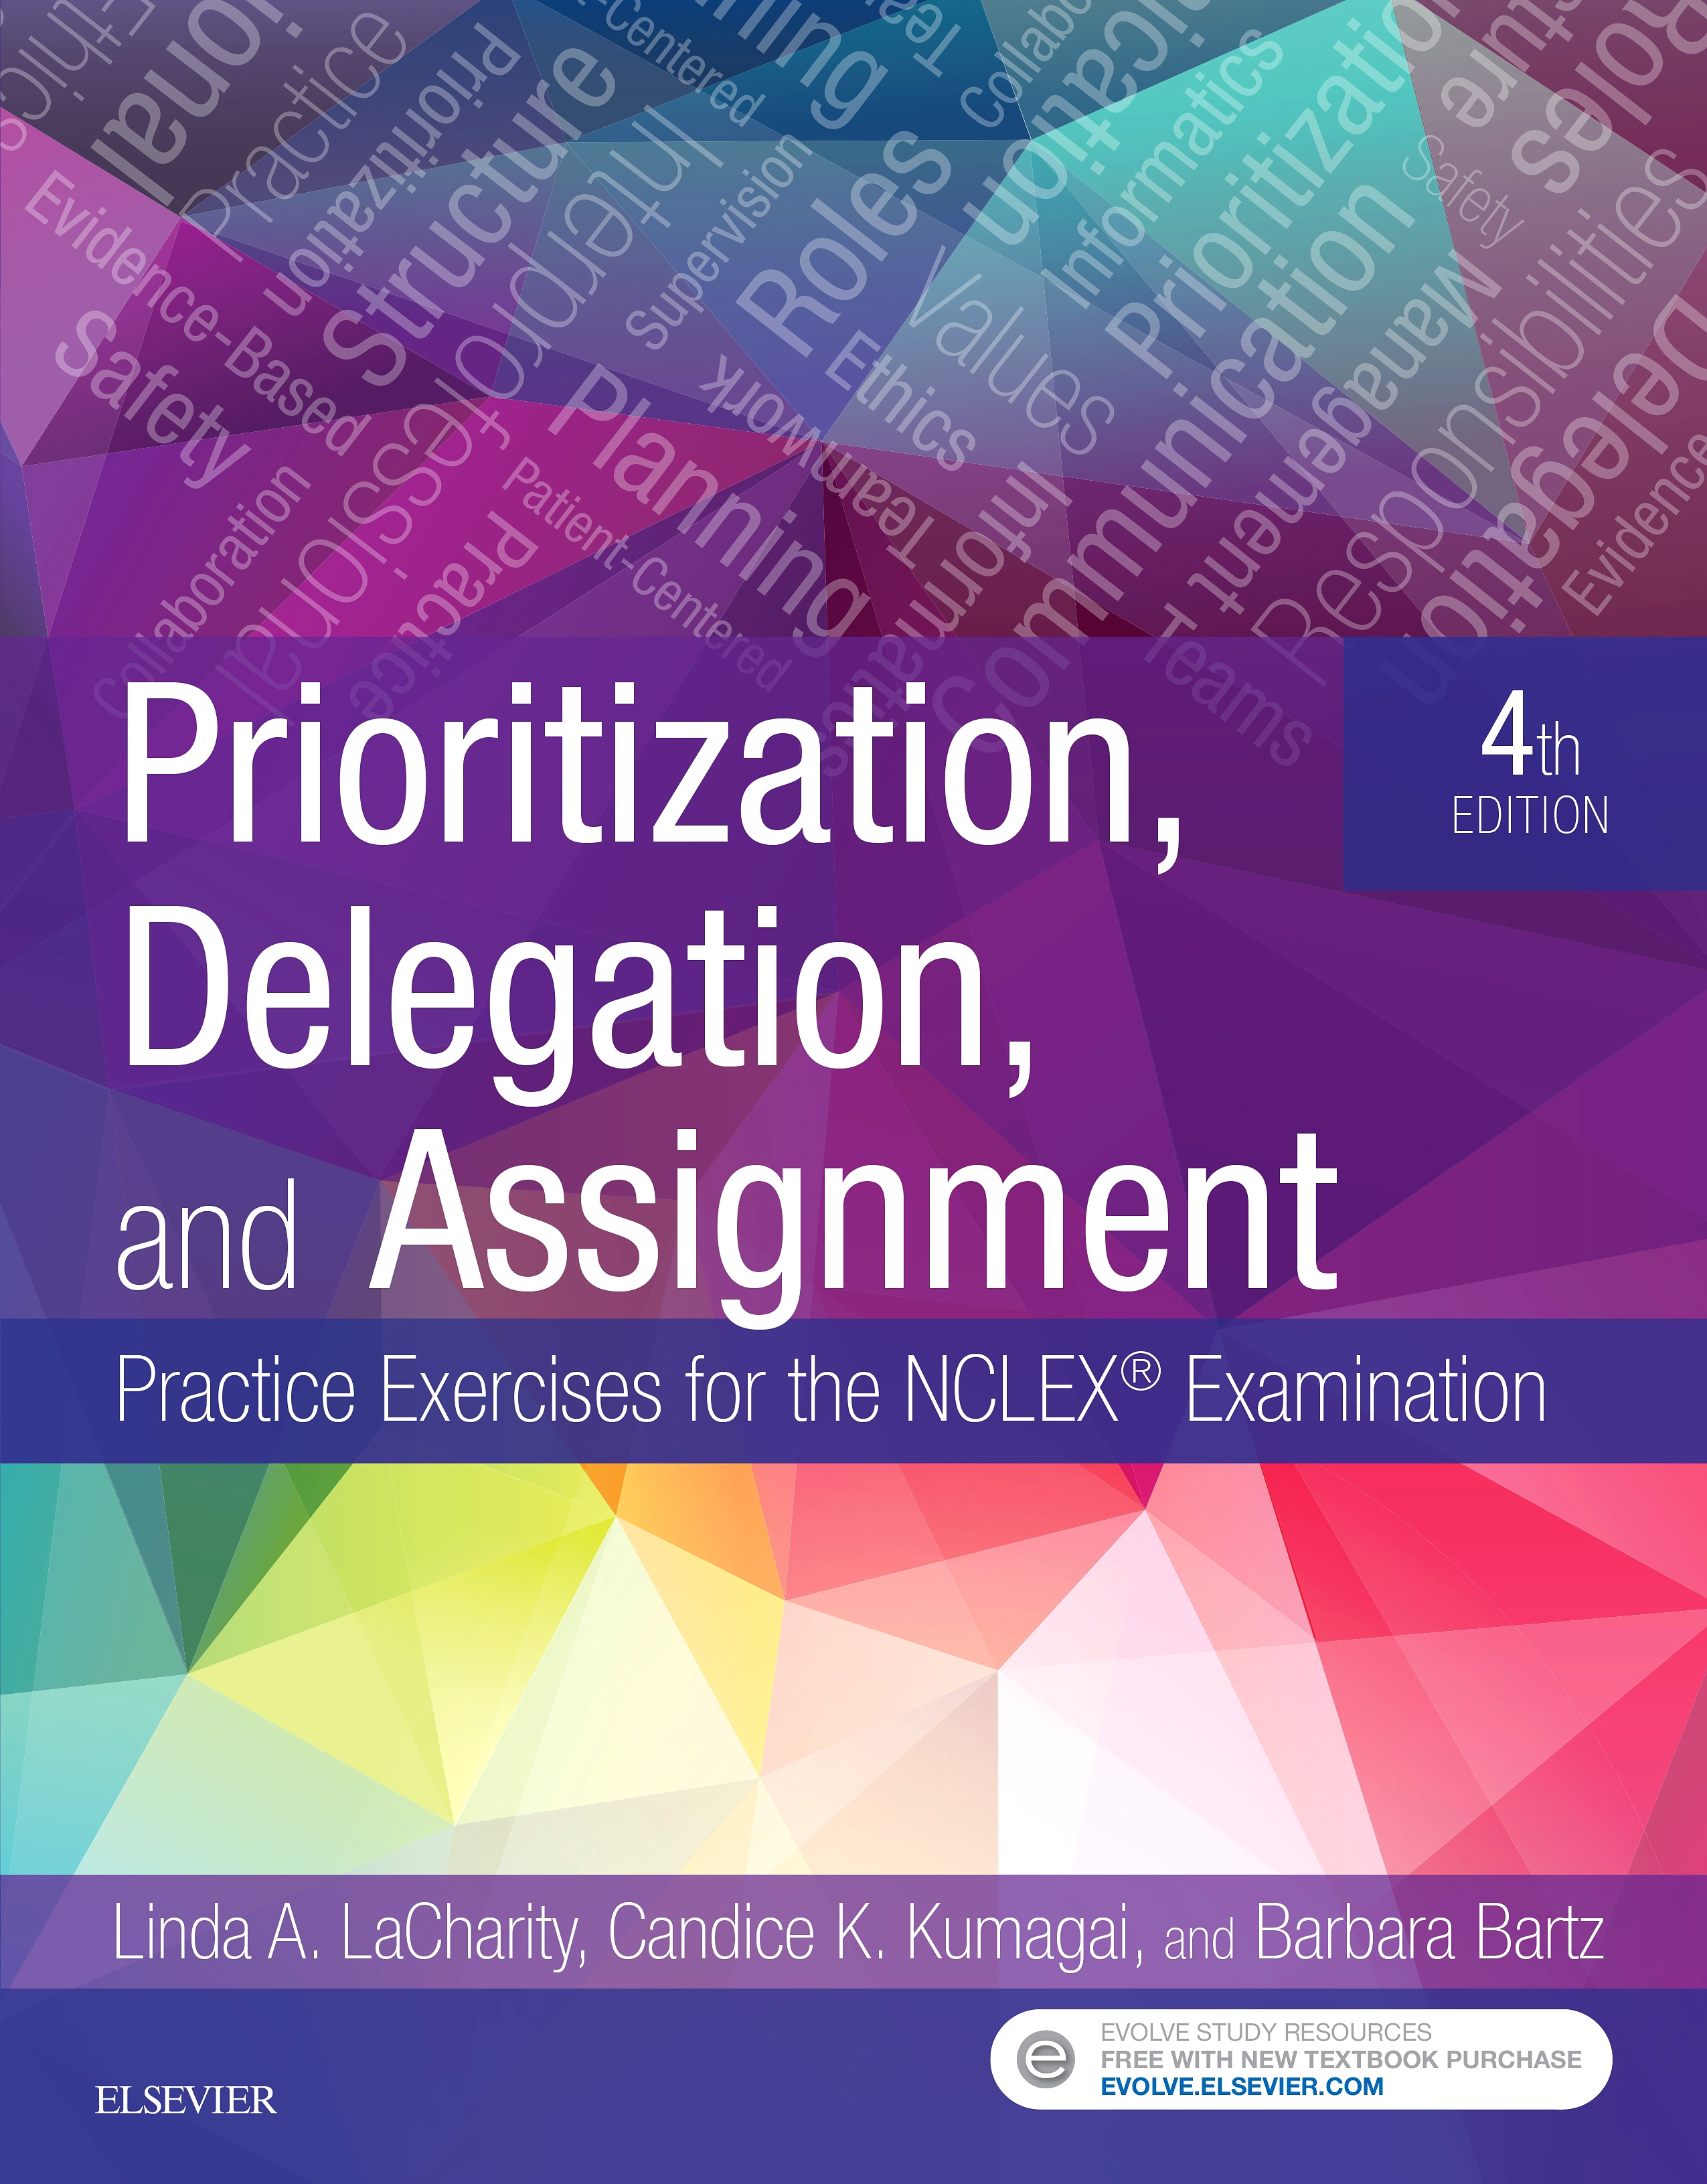 Evolve Resources for Prioritization, Delegation, and Assignment, 4th Edition